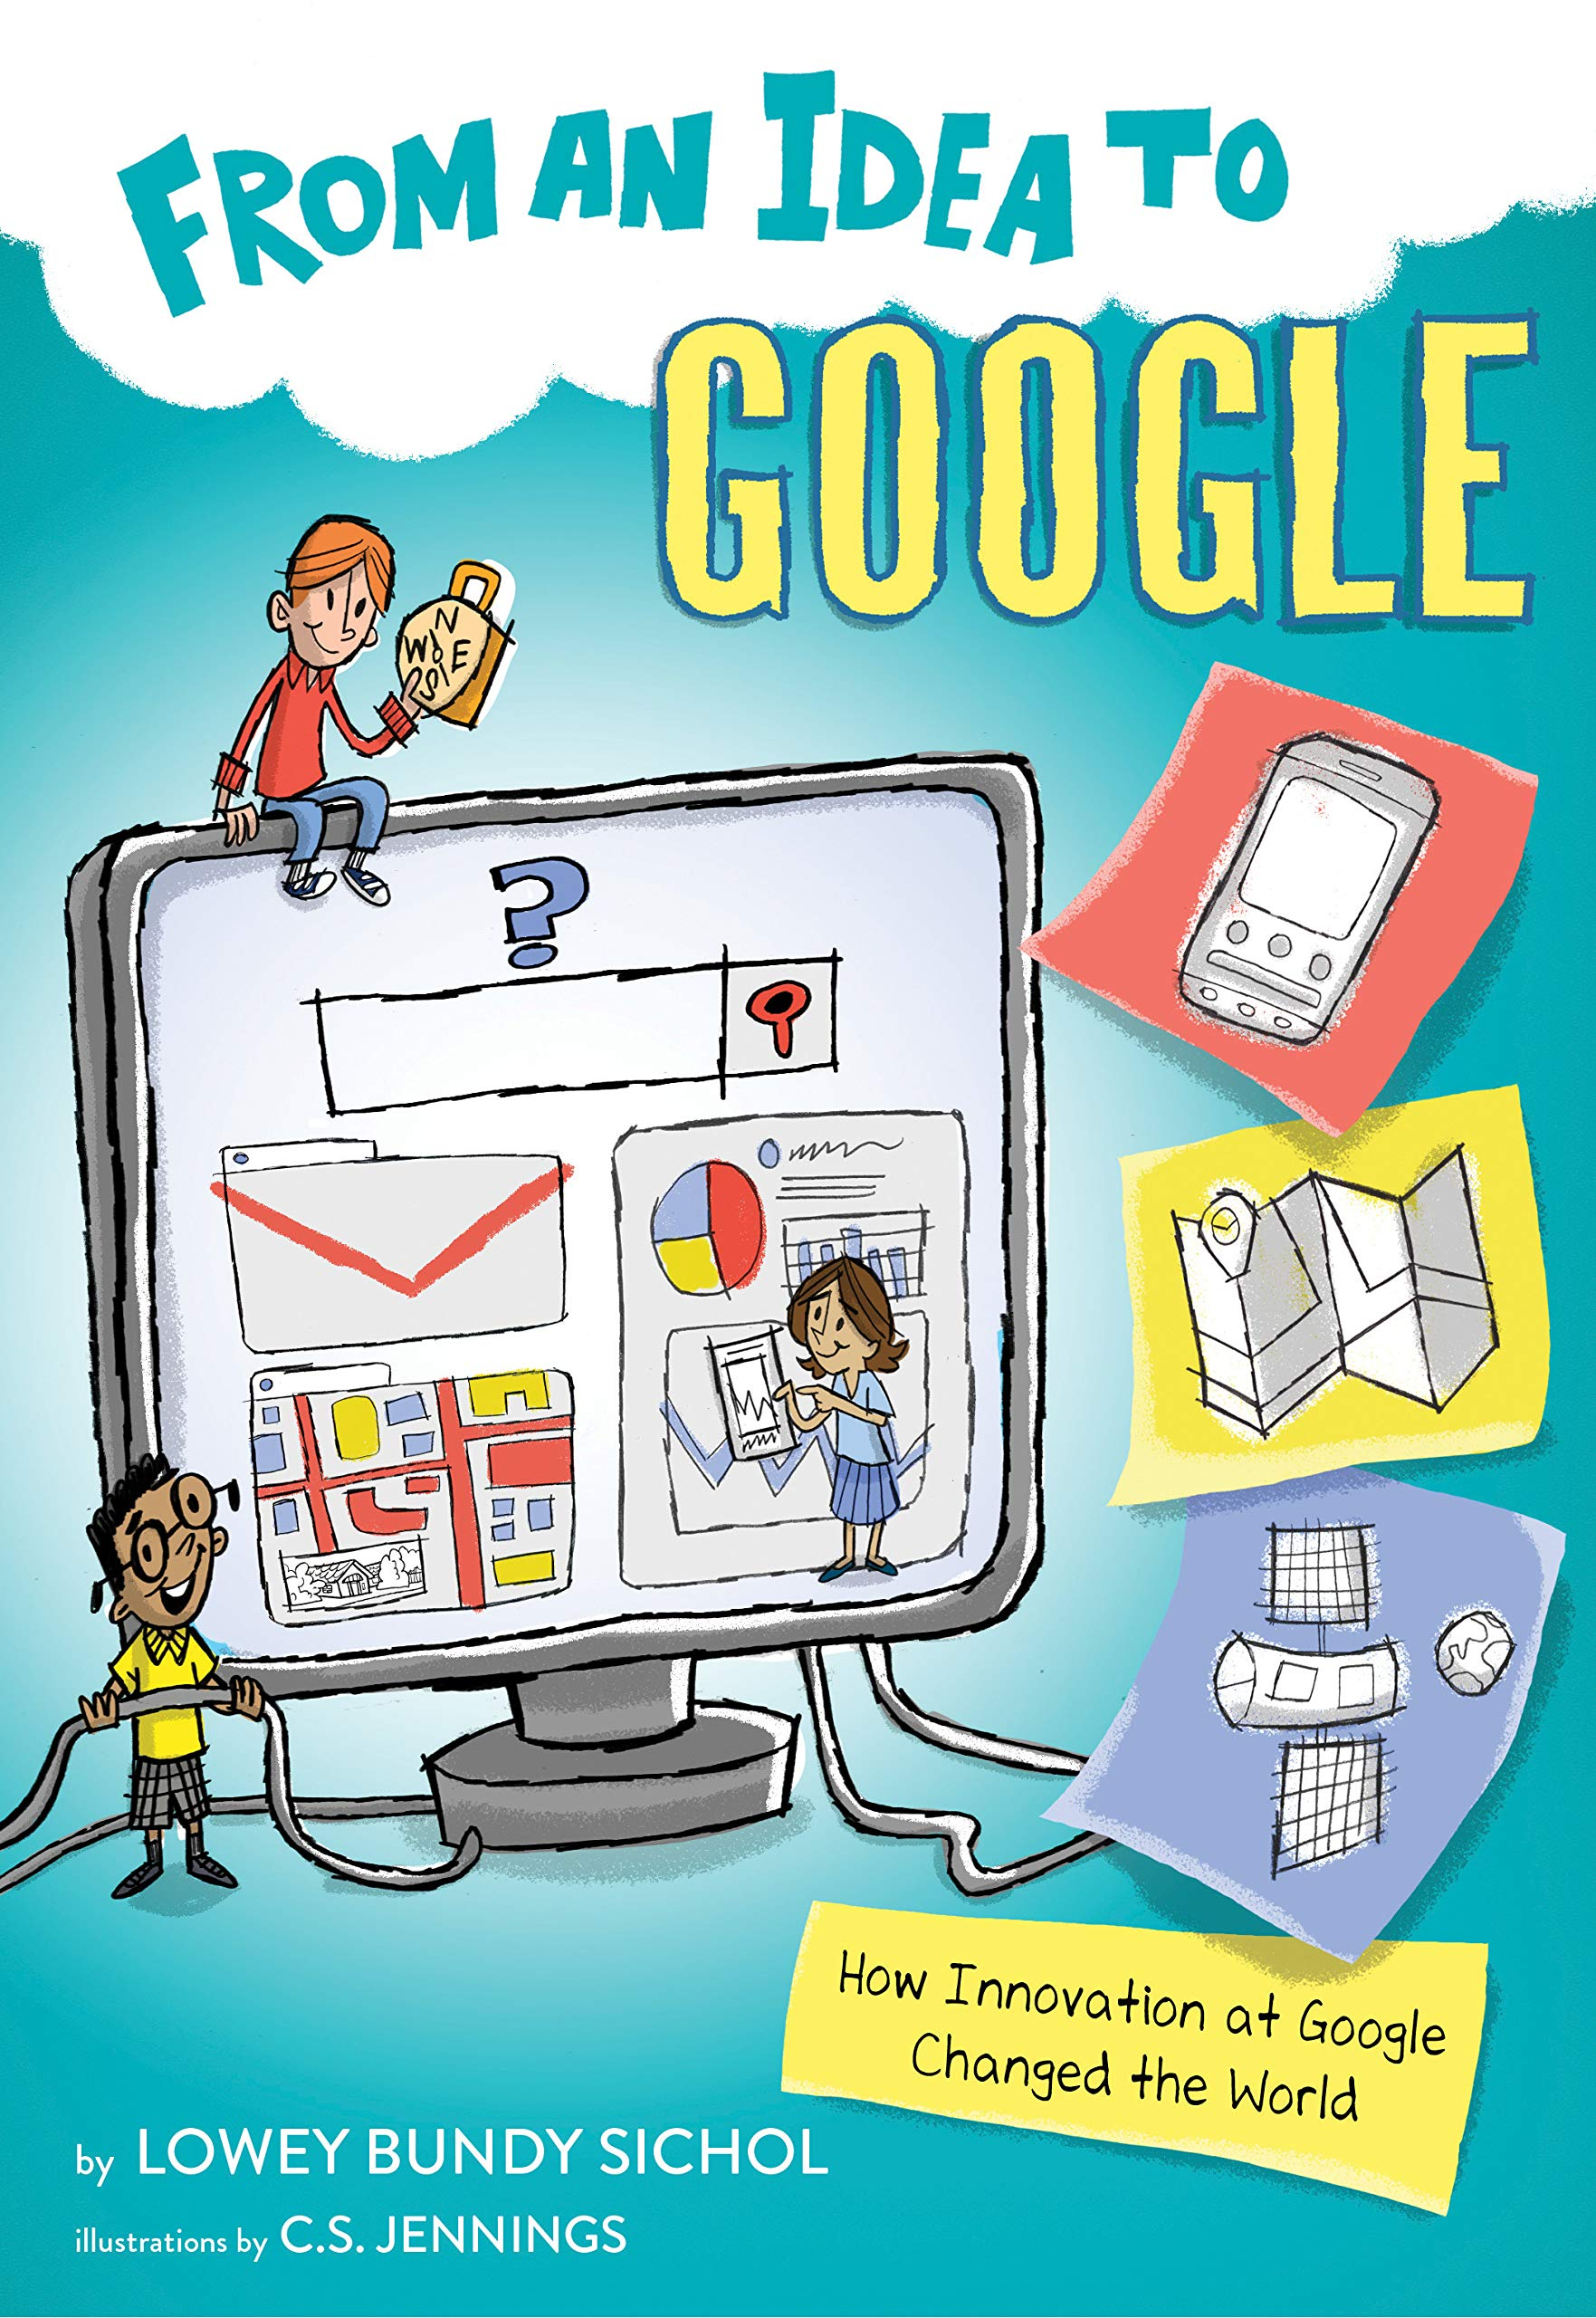 From an Idea to Google: How Innovation at Google Changed the World: Sichol, Lowey Bundy, Jennings, C.S.: 9781328954923: Amazon.com: Books